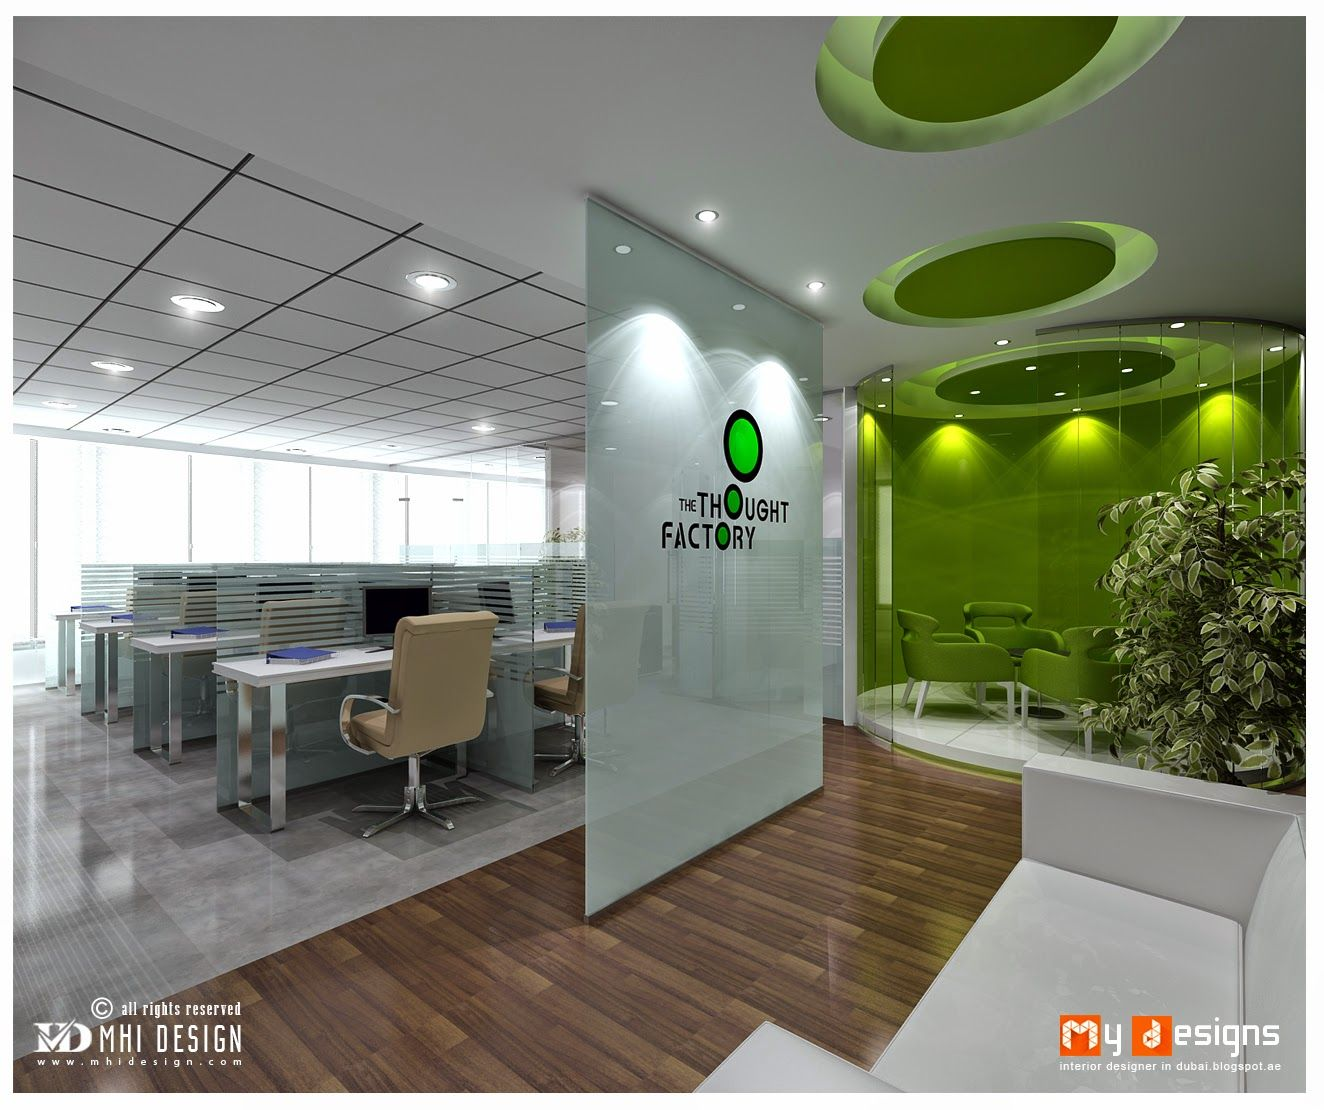 Dubai Office Reception Design Proposal For One Of Mhi Design